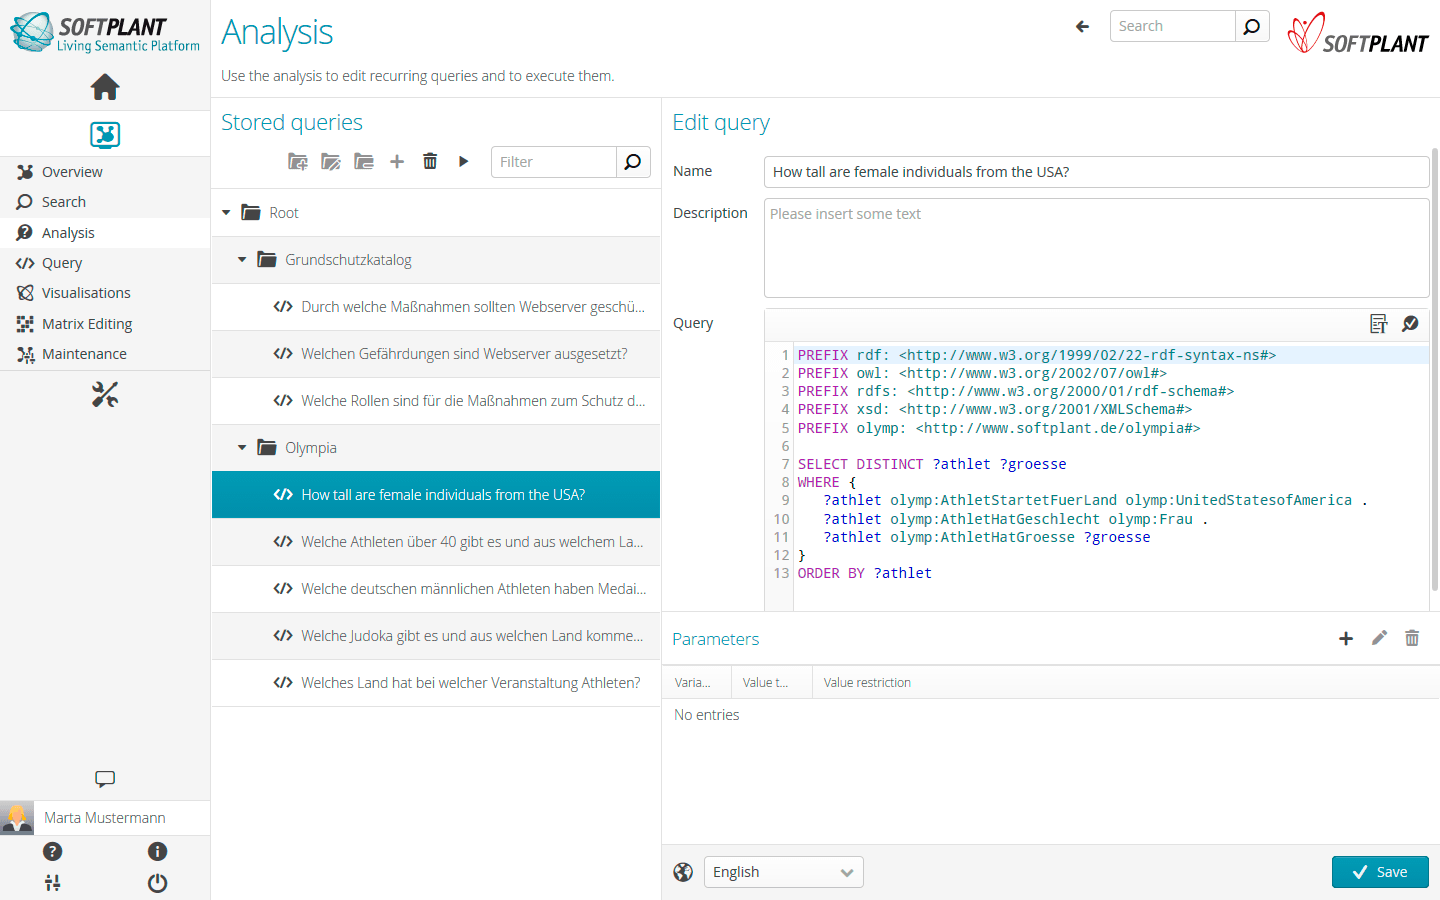 Integrated Codeeditor: Use an integrated code editor to create SPARQL queries